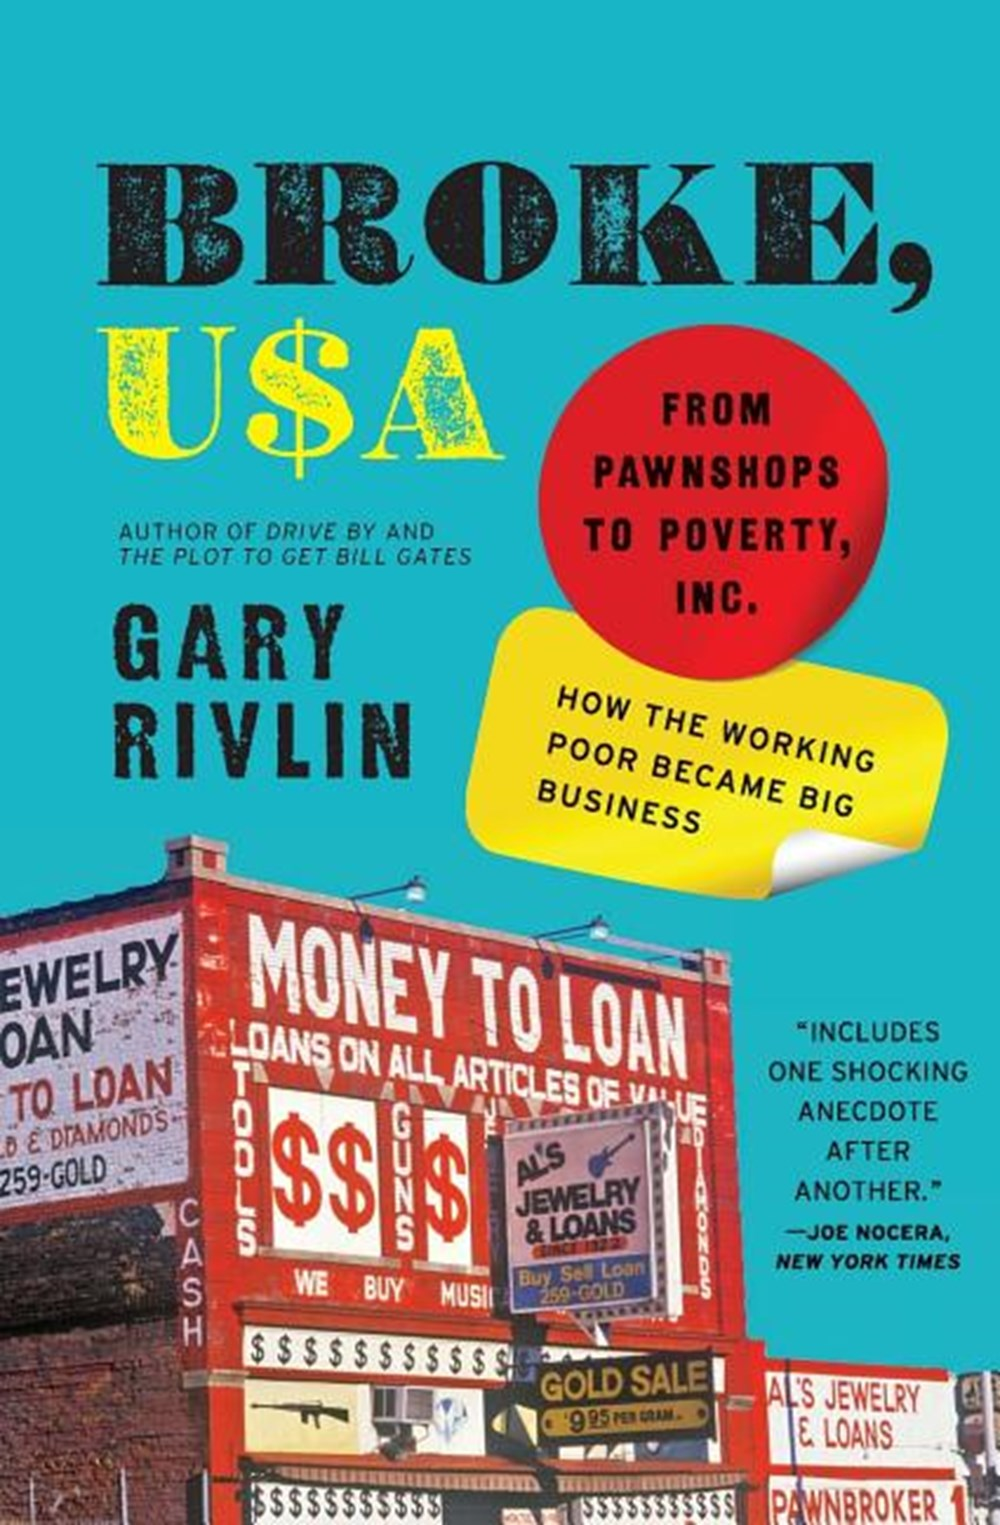 Broke, USA From Pawnshops to Poverty, Inc.: How the Working Poor Became Big Business